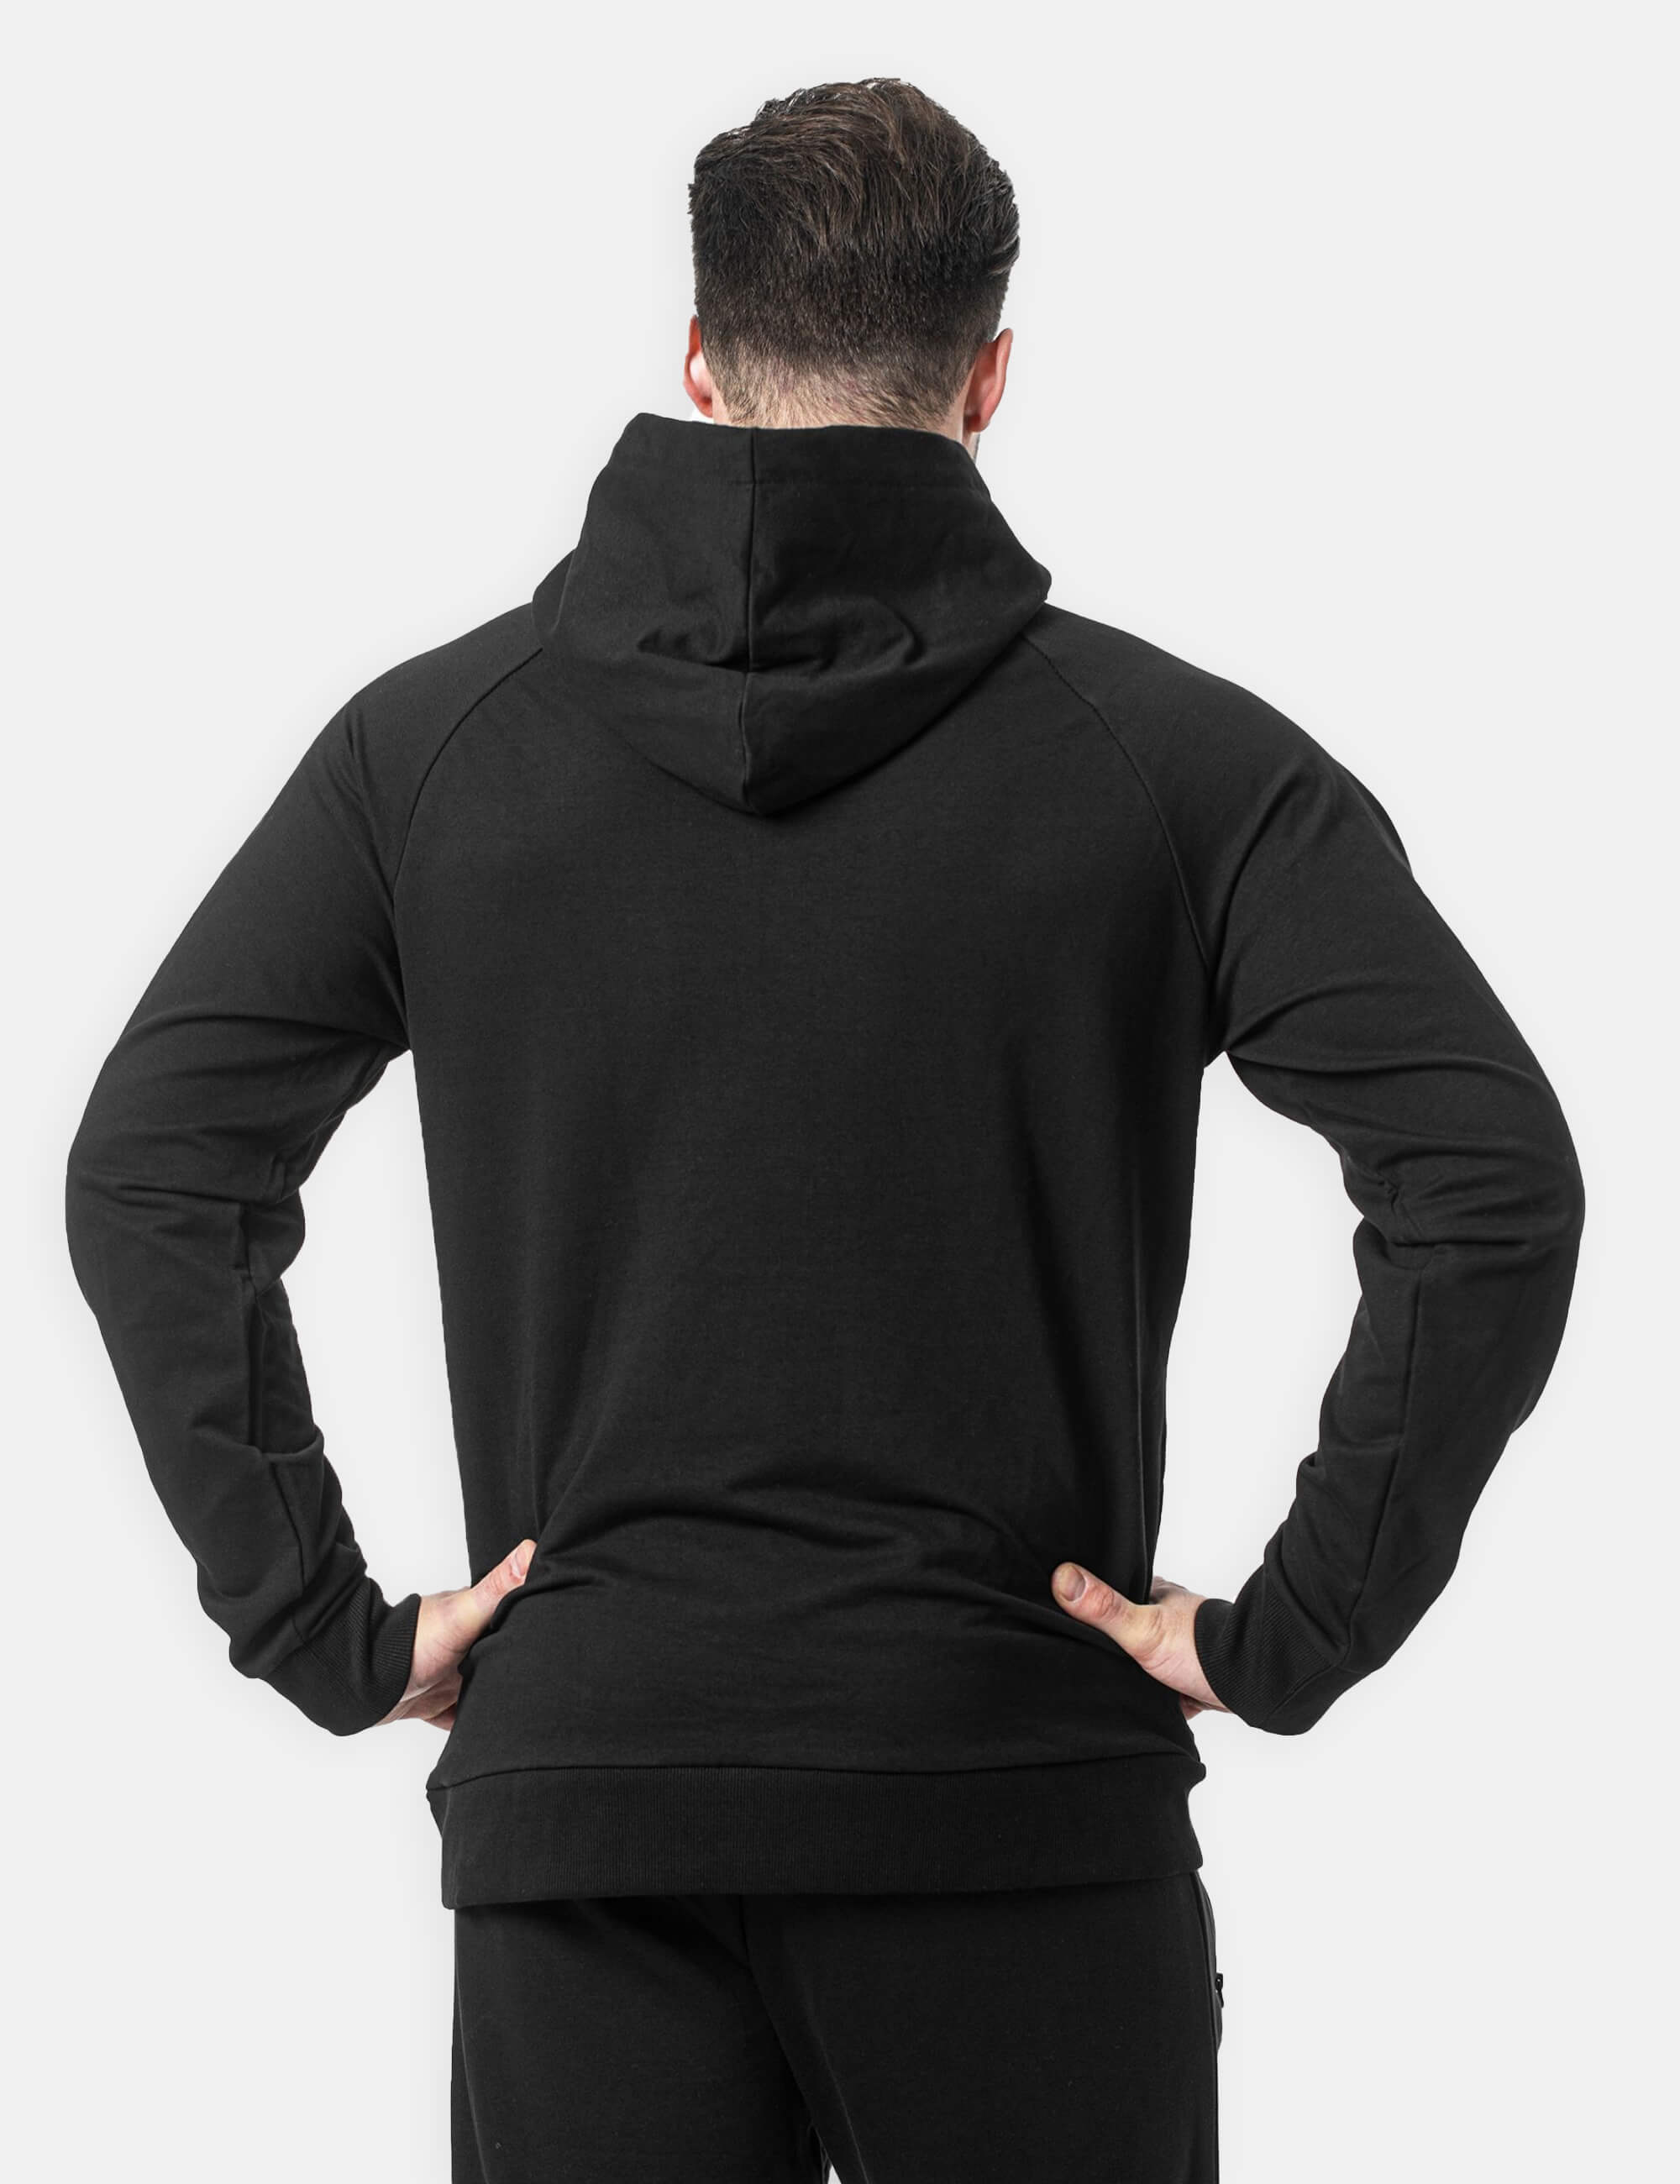 Black hoodie Performance hoodie worn by a male Calisthenics athlete. front view.